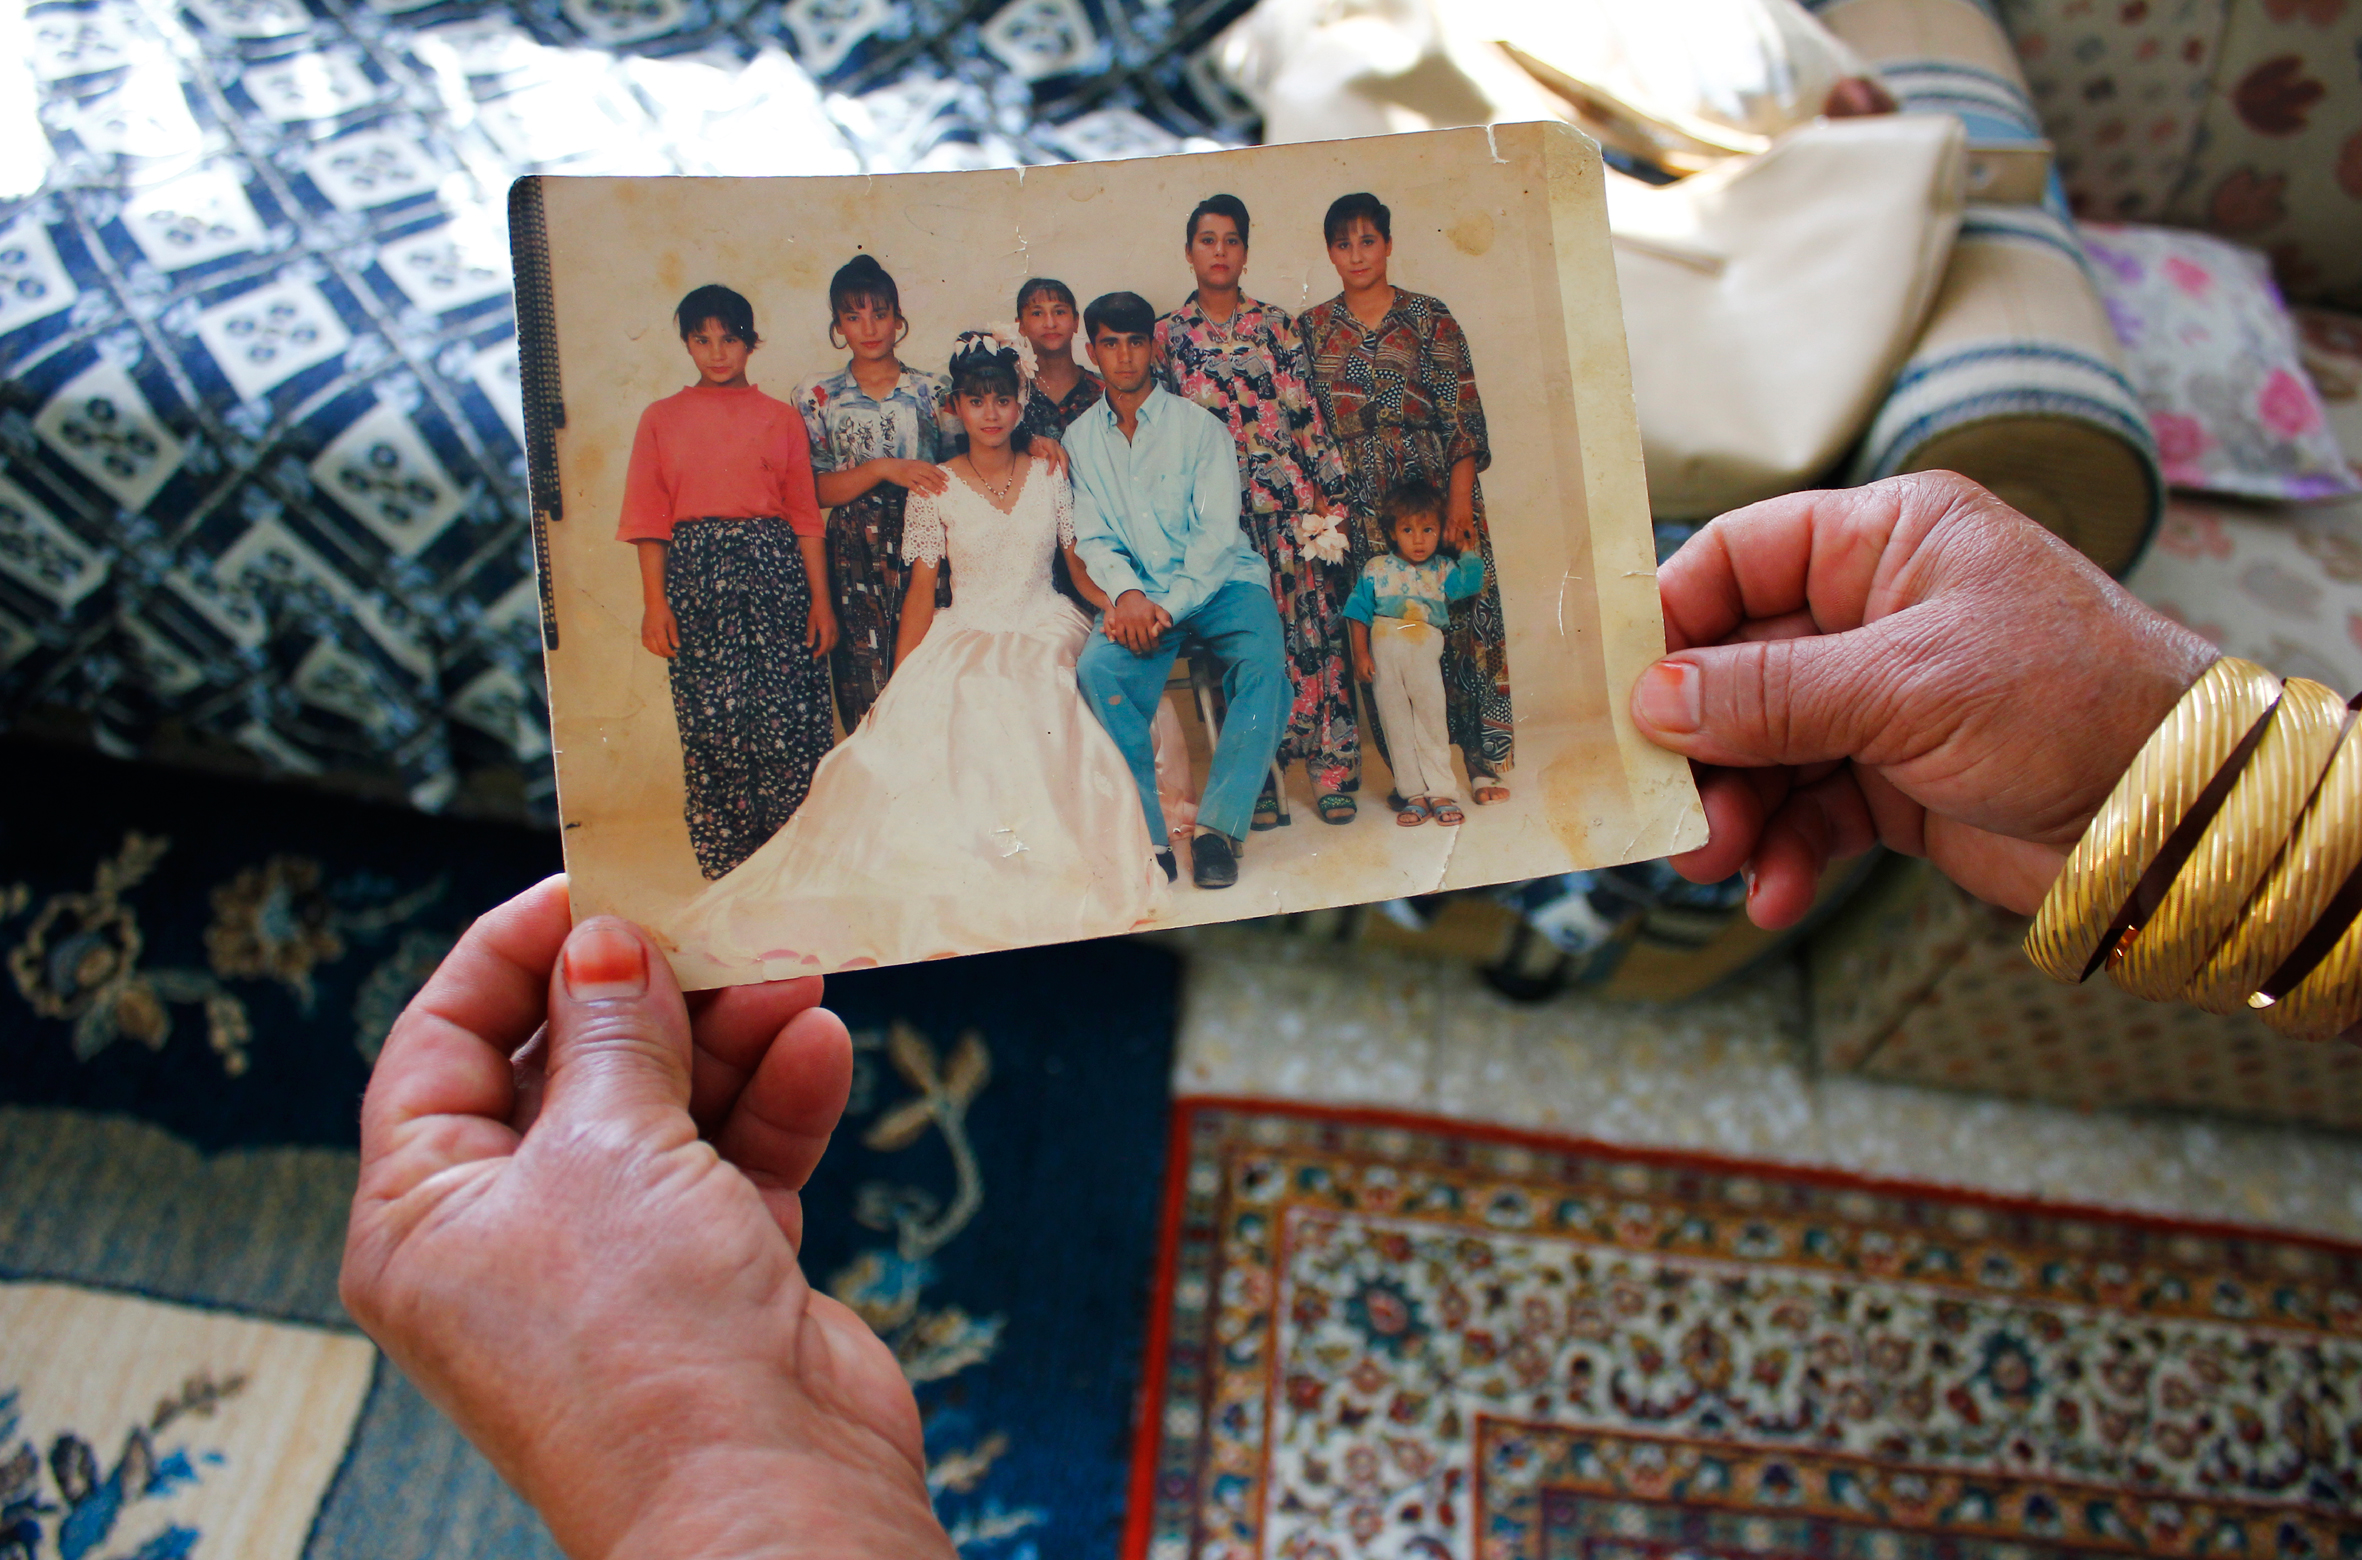 One photo project focused on a Roma family. (Photo courtesy of the BAK project)